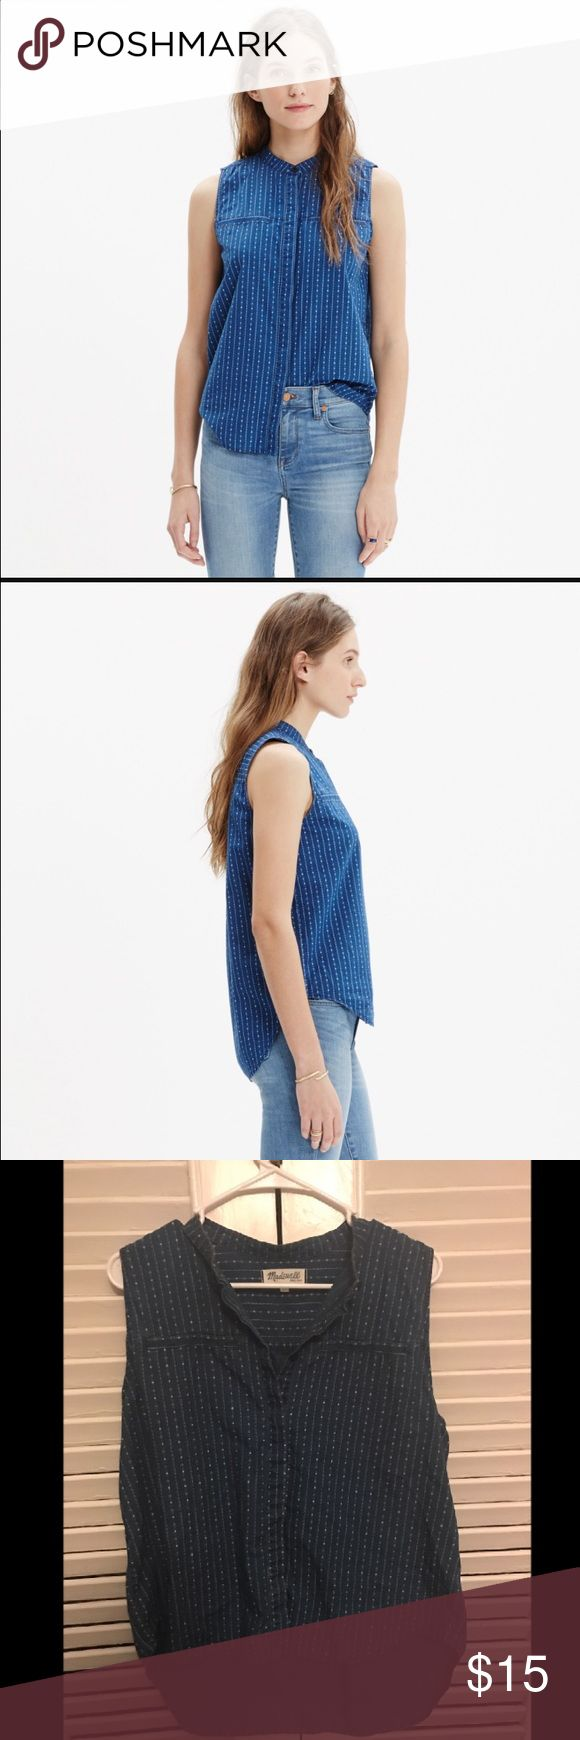 Madewell Denim Chambray Sleeveless Shirt Madewell Denim sleeveless top with white dots/ stripes. Size XL. Gently used. Madewell Tops Button Down Shirts